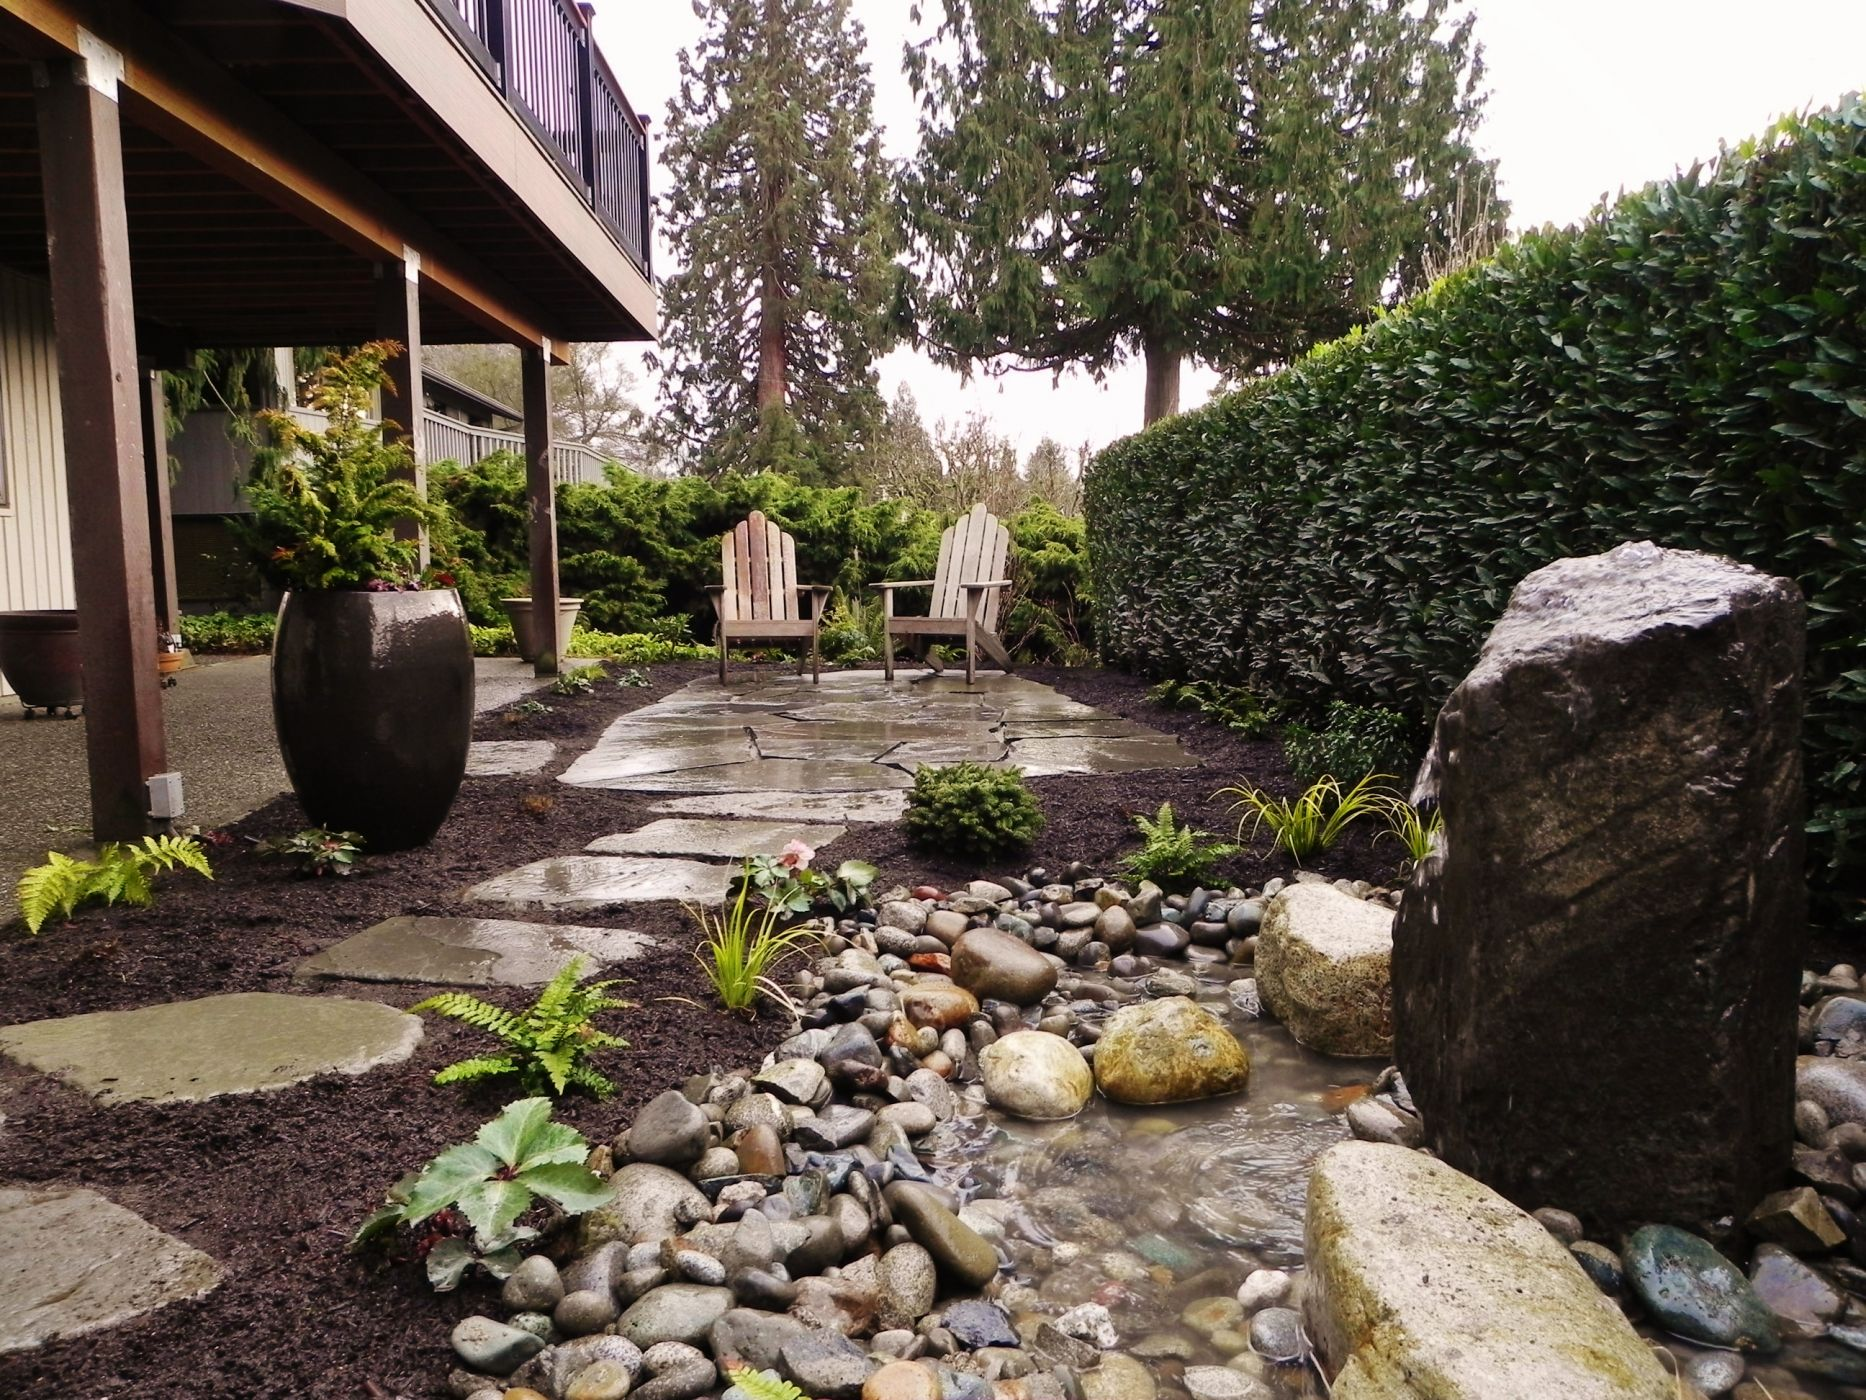 edmonds backyard landscape sublime garden design